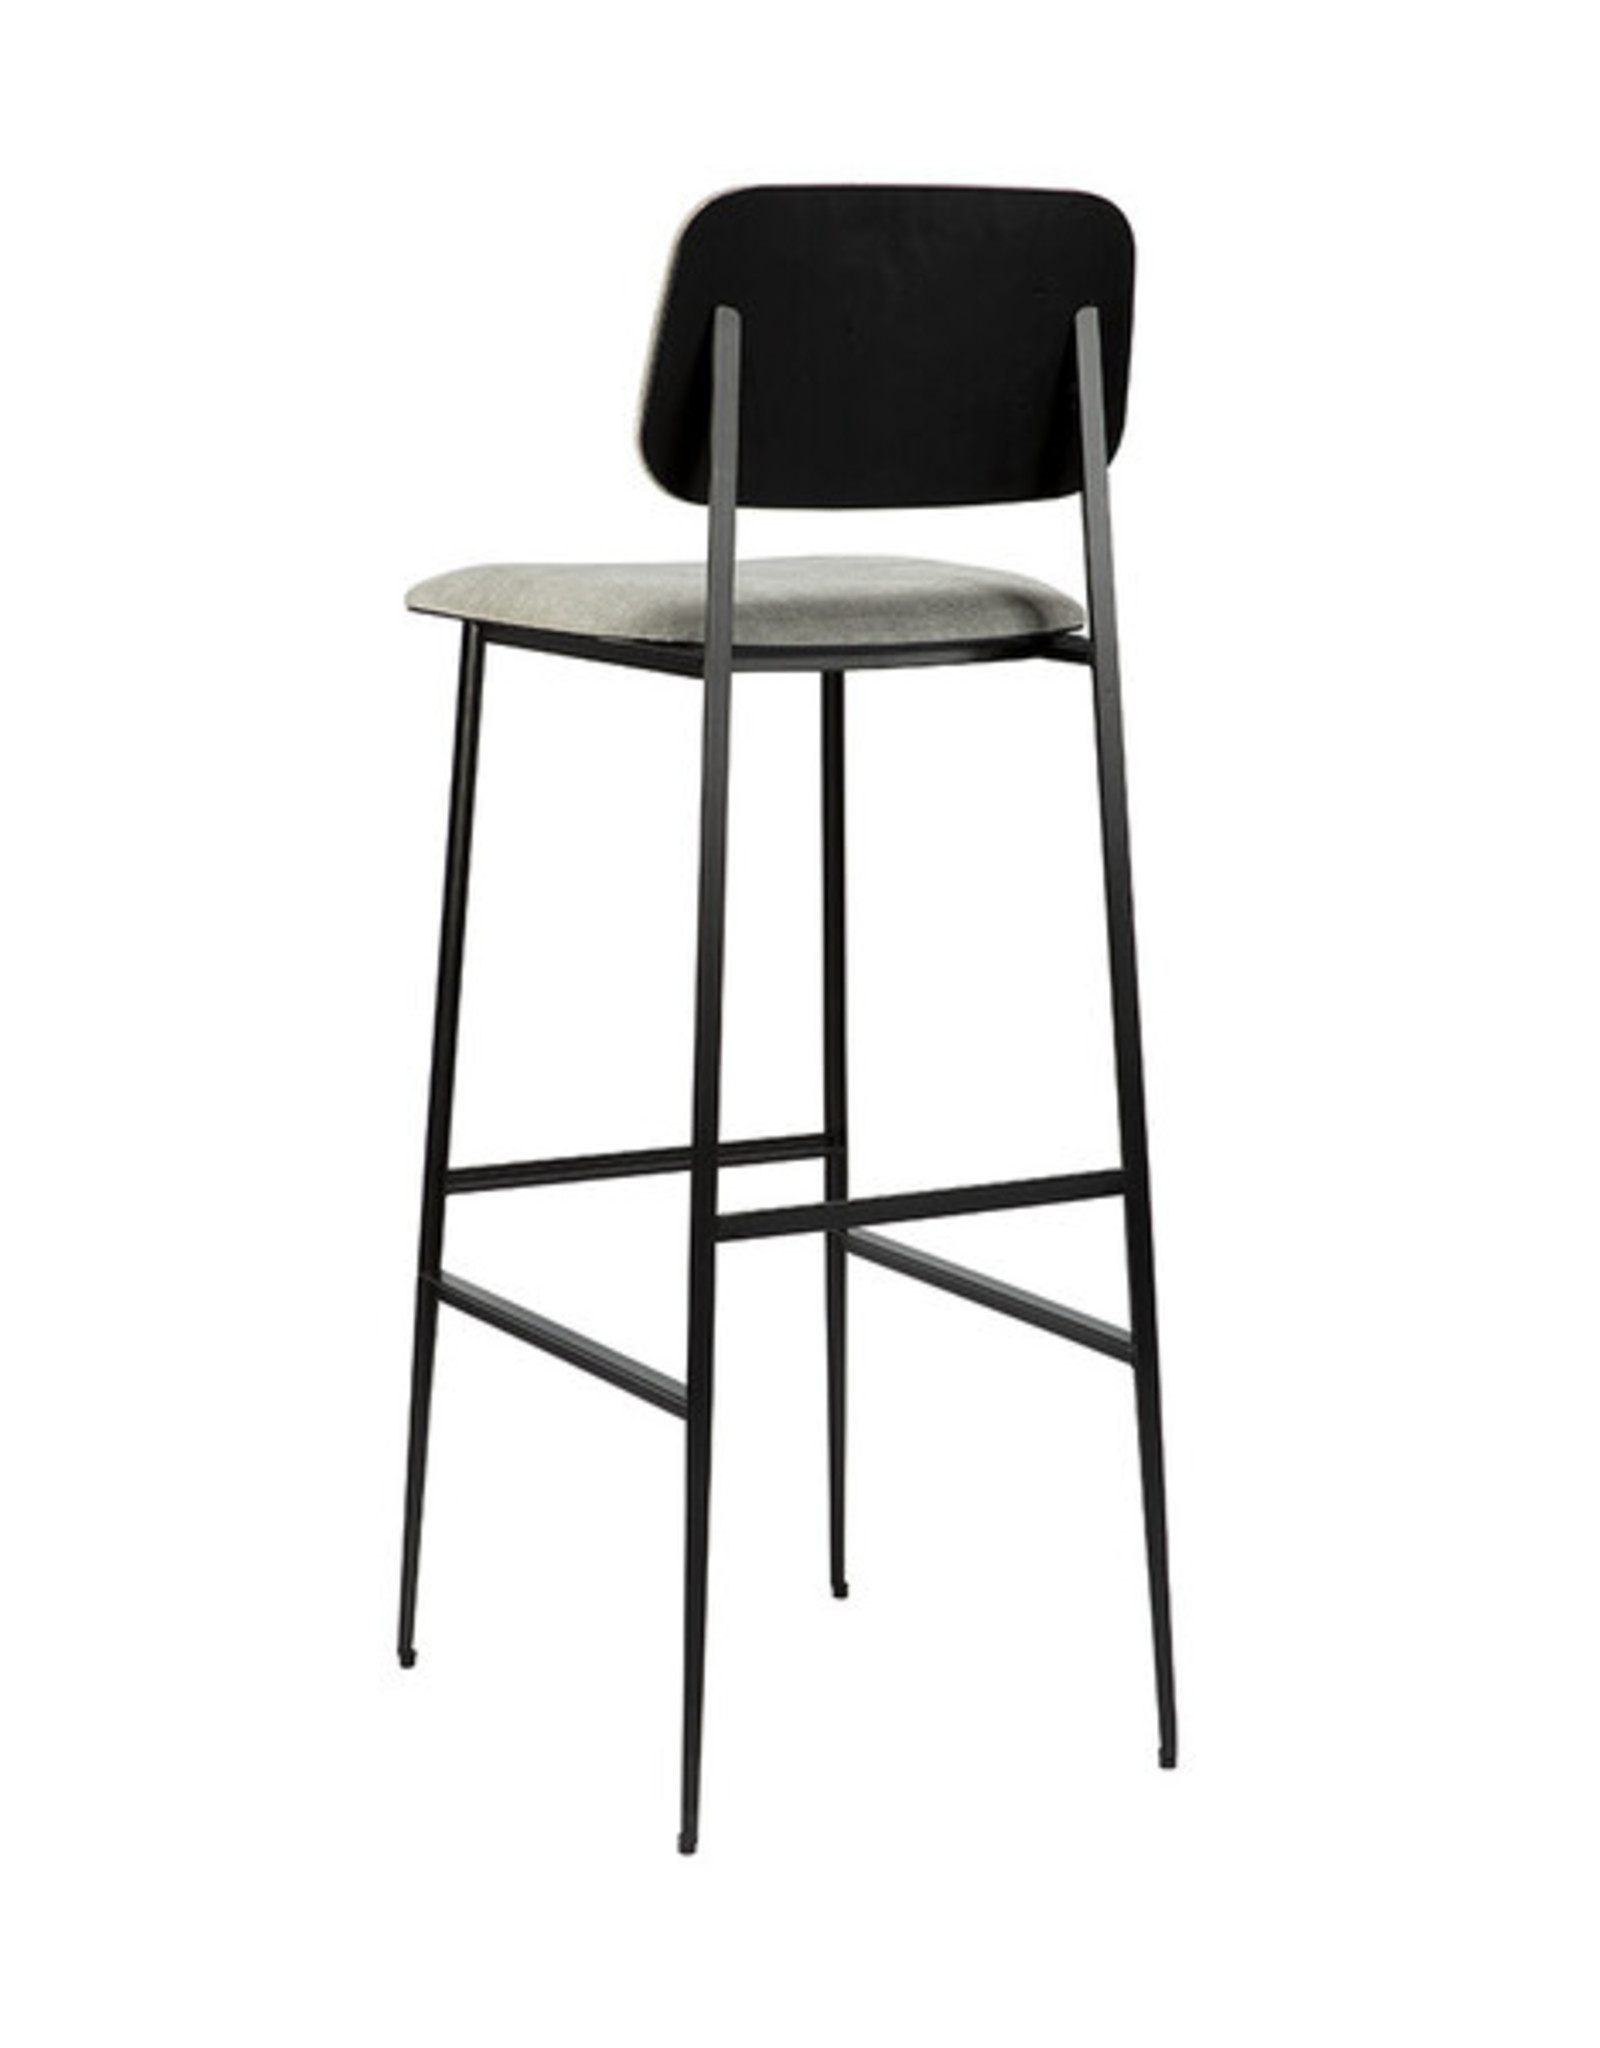 DC bar stool - light grey